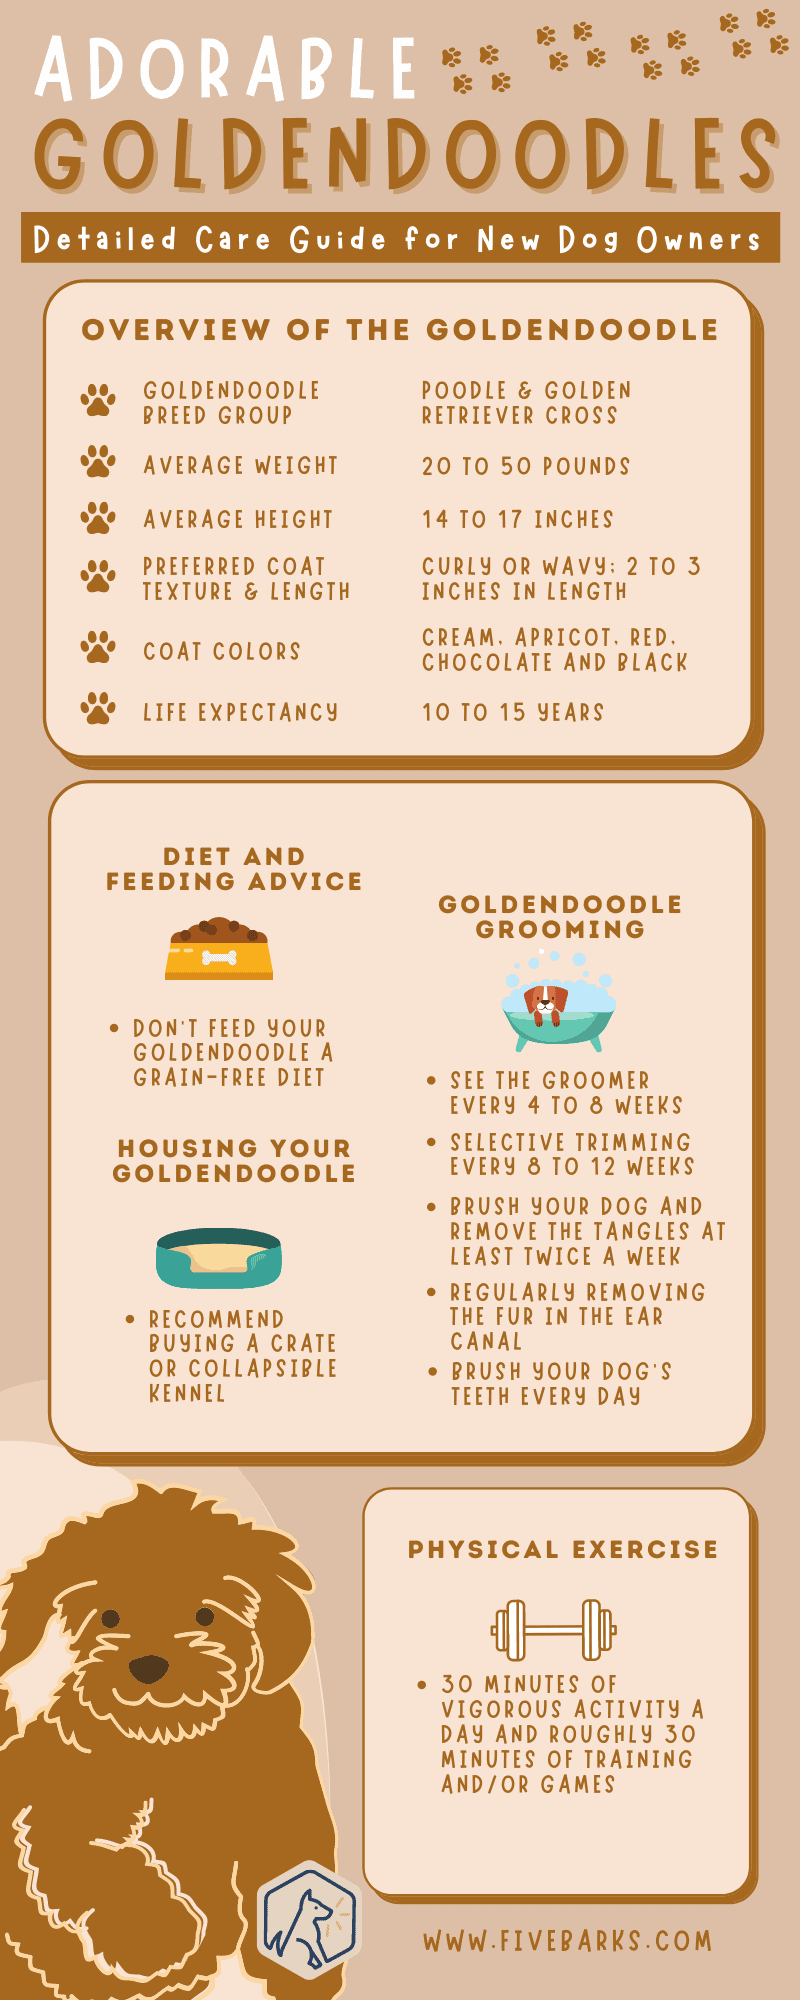 Adorable Goldendoodles: Detailed Care Guide for New Dog Owners - Infographic